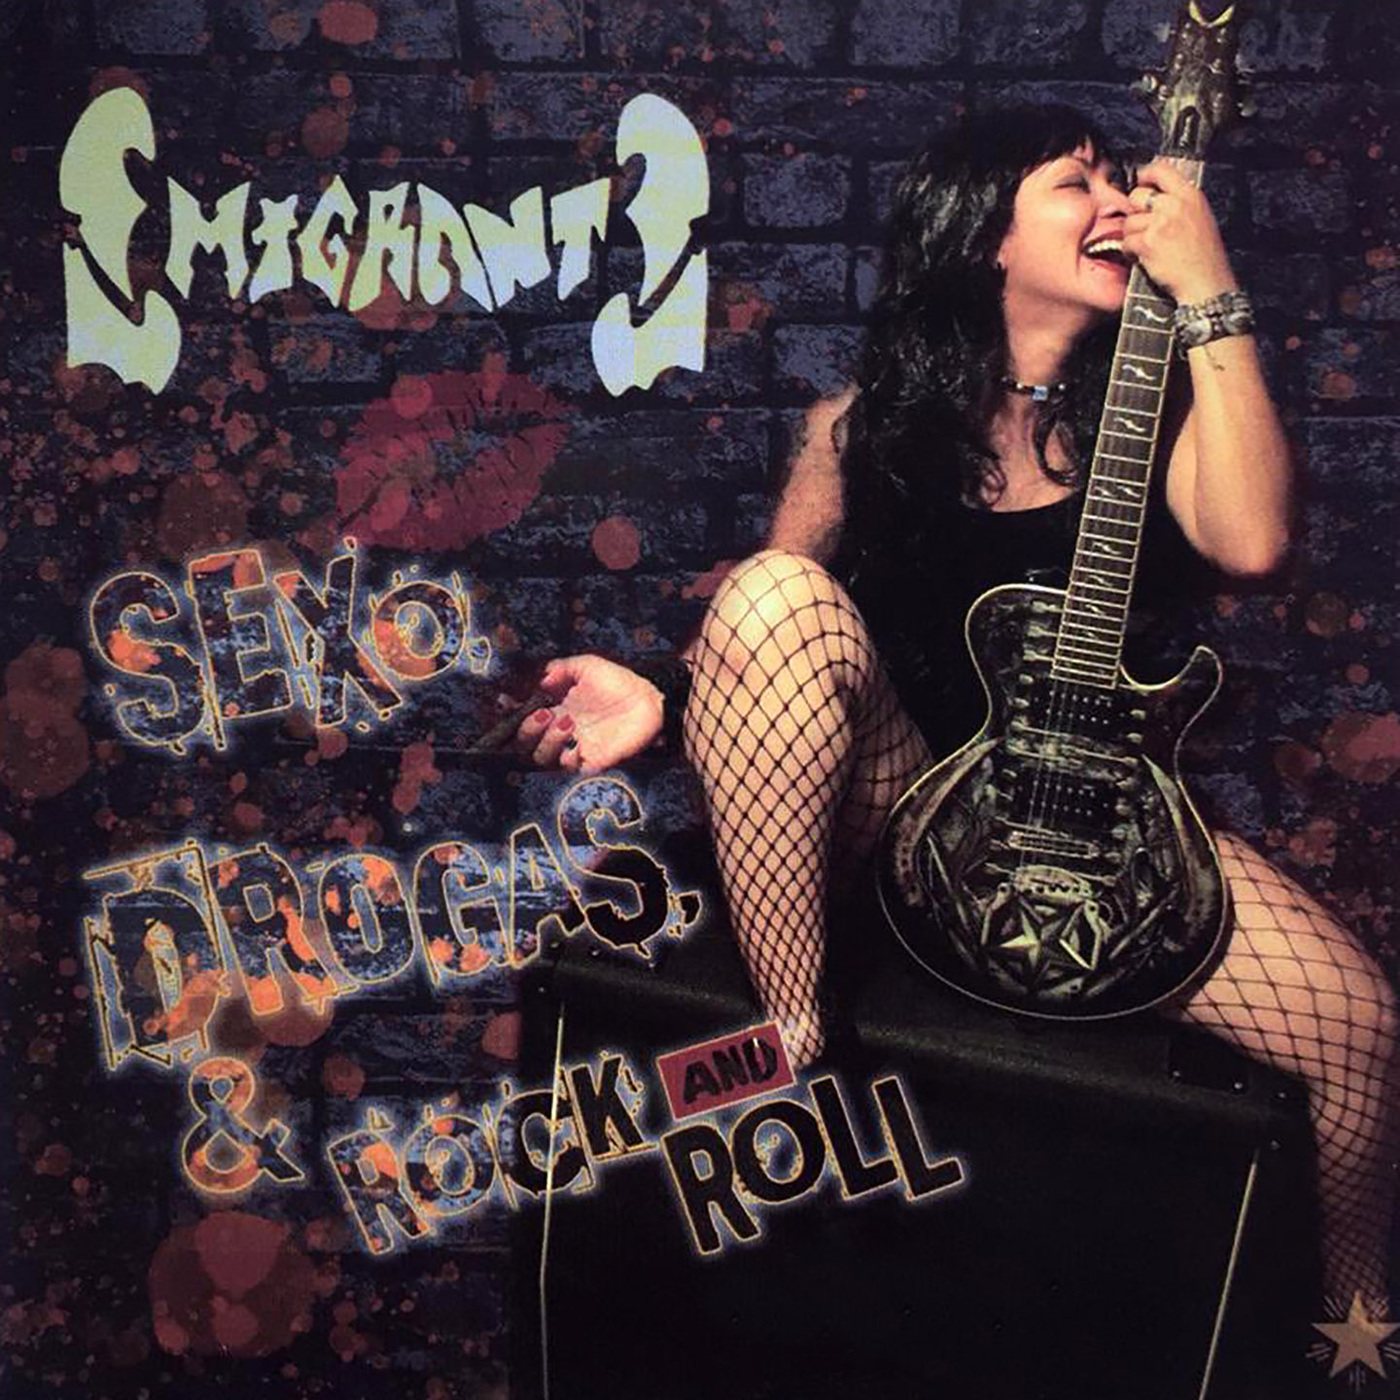 Emigrante – Sexo, drogas y rock and roll